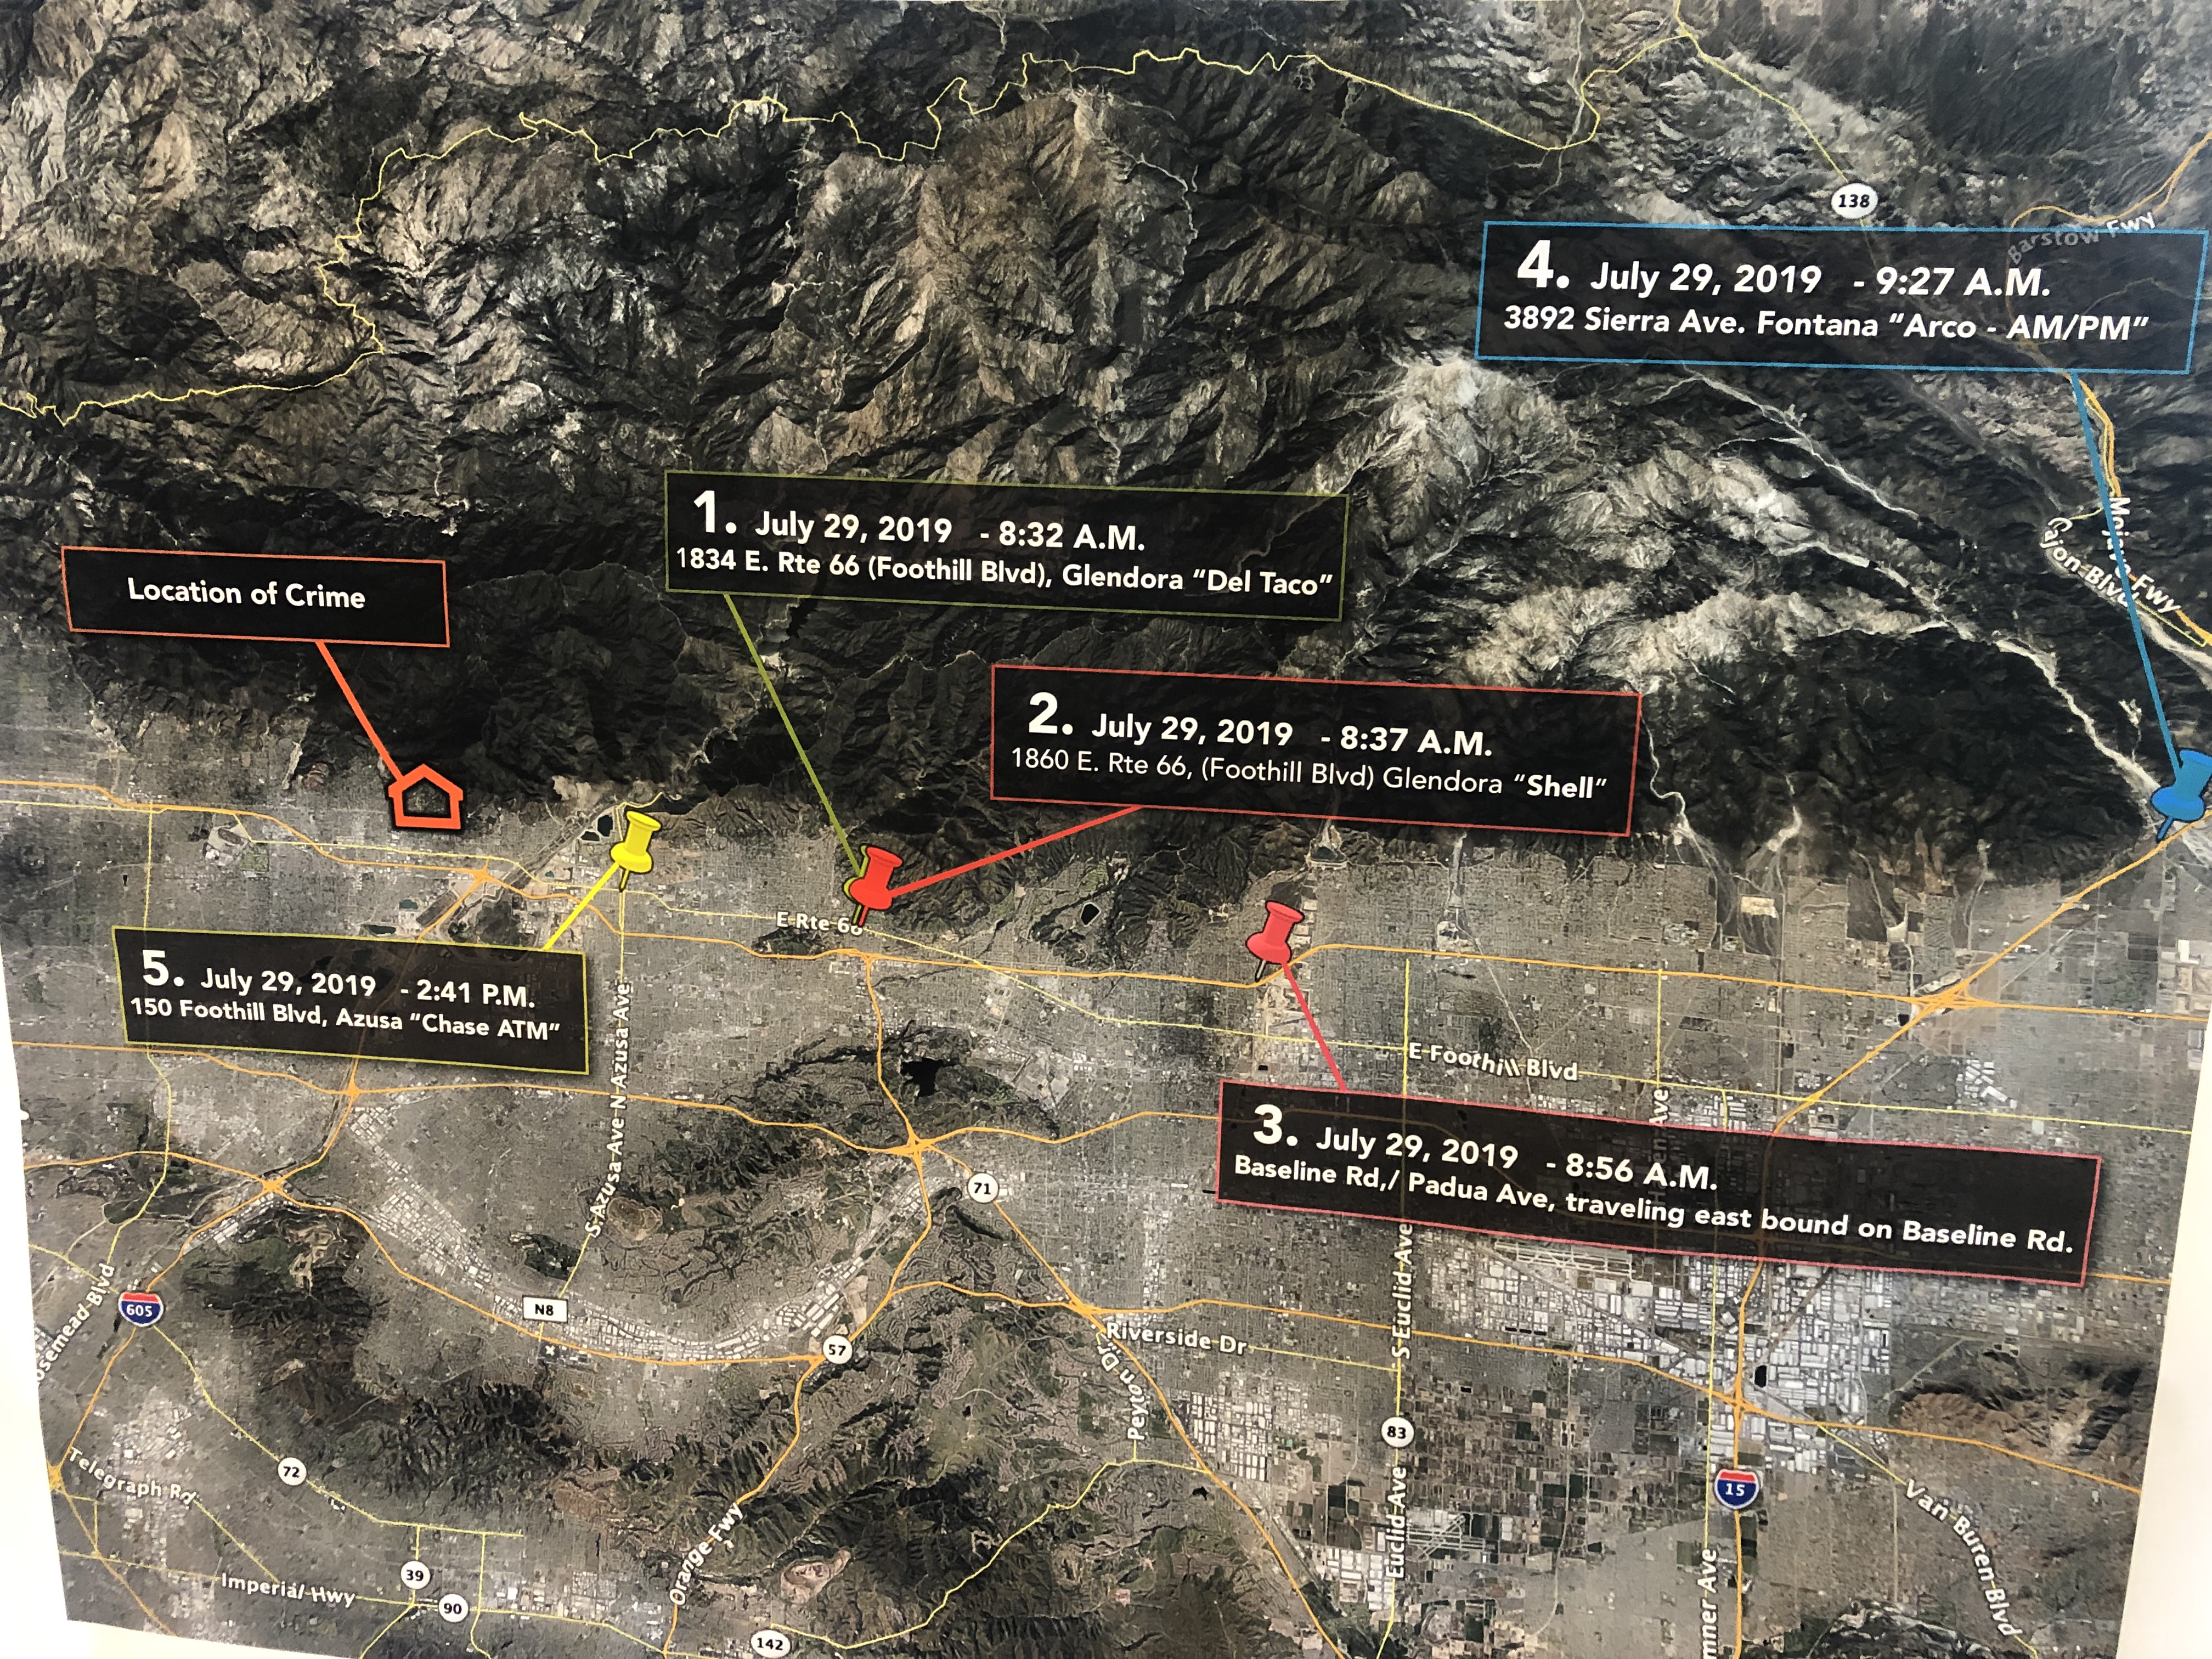 A map showing the whereabouts of Robert Camou after he allegedly kidnapped Amanda Custer was provided by the Los Angeles County Sheriff's Department on Aug. 8, 2019.